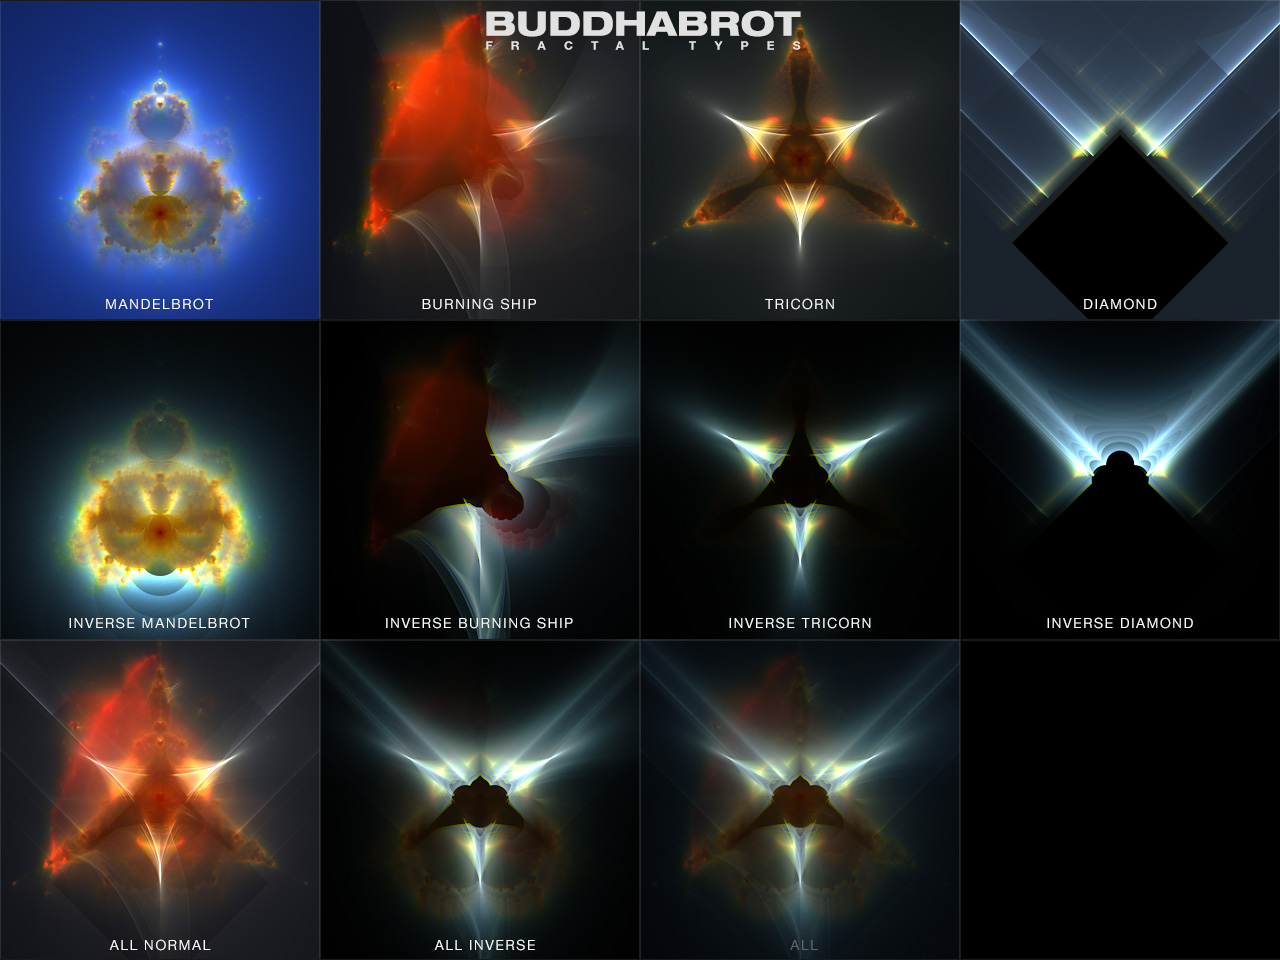 software_buddhabrot_types